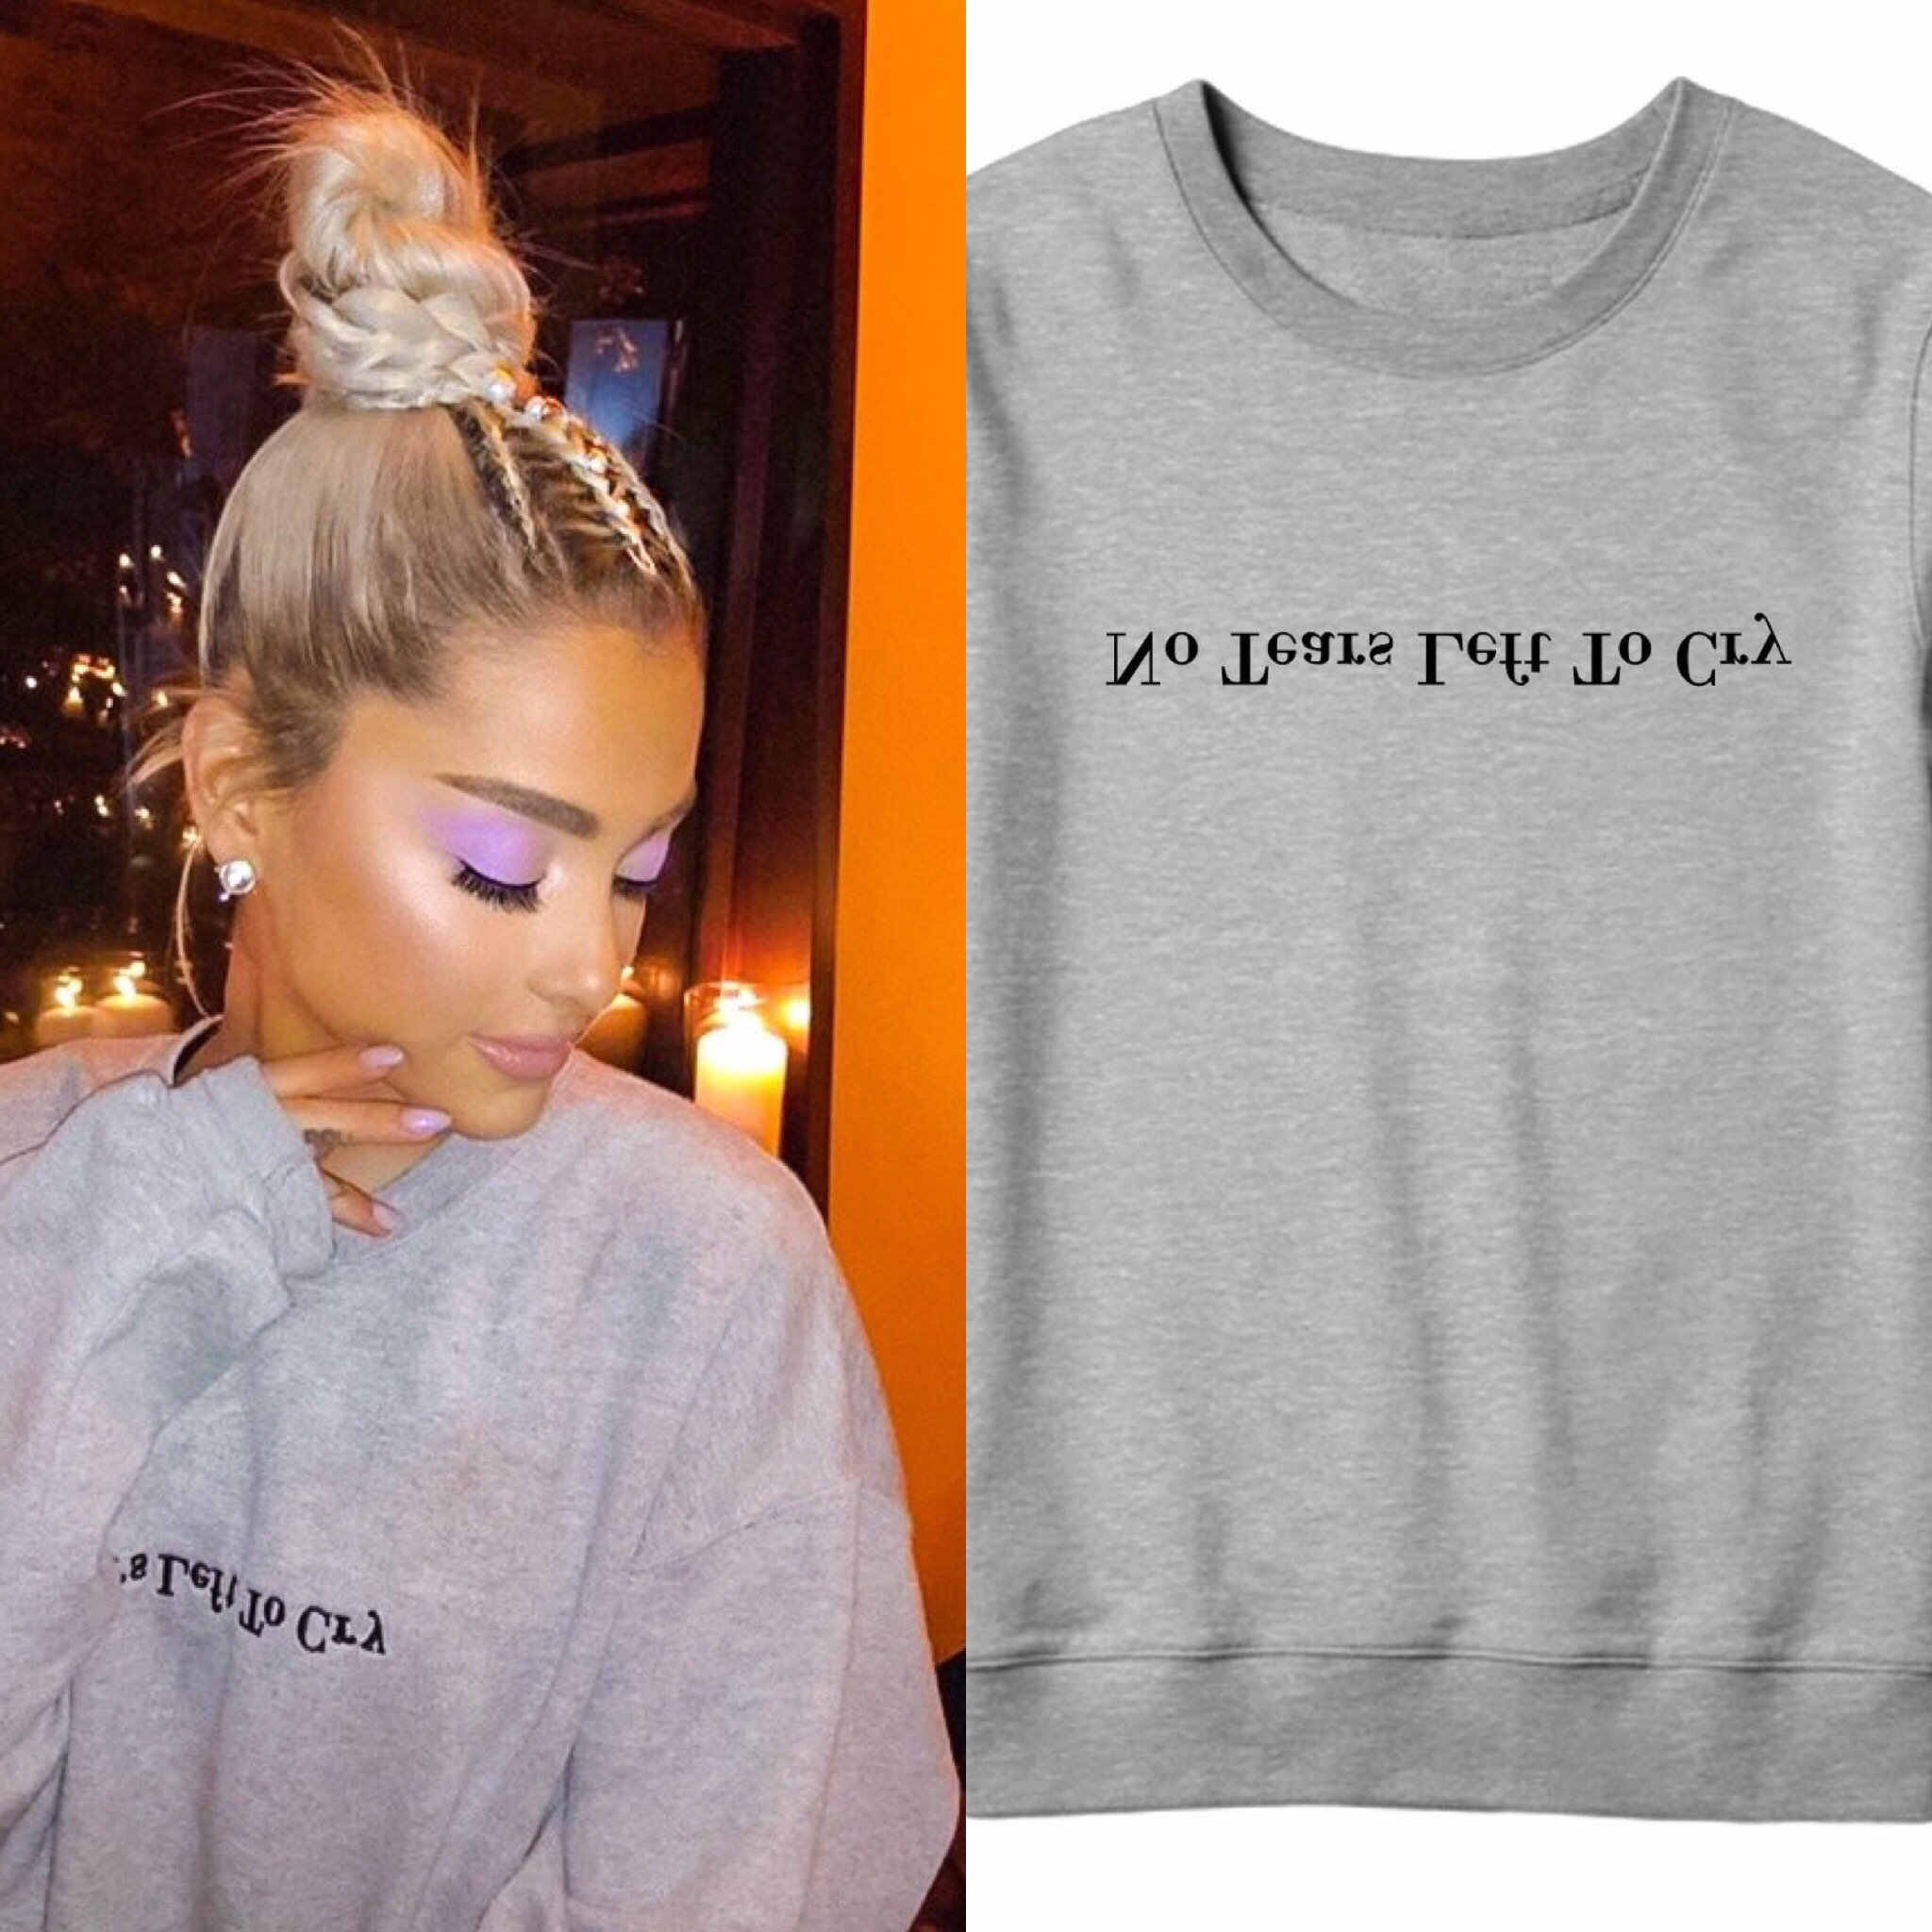 Print letter no tears left to cry ariana grande sweatshirt wonen print hoodie brand